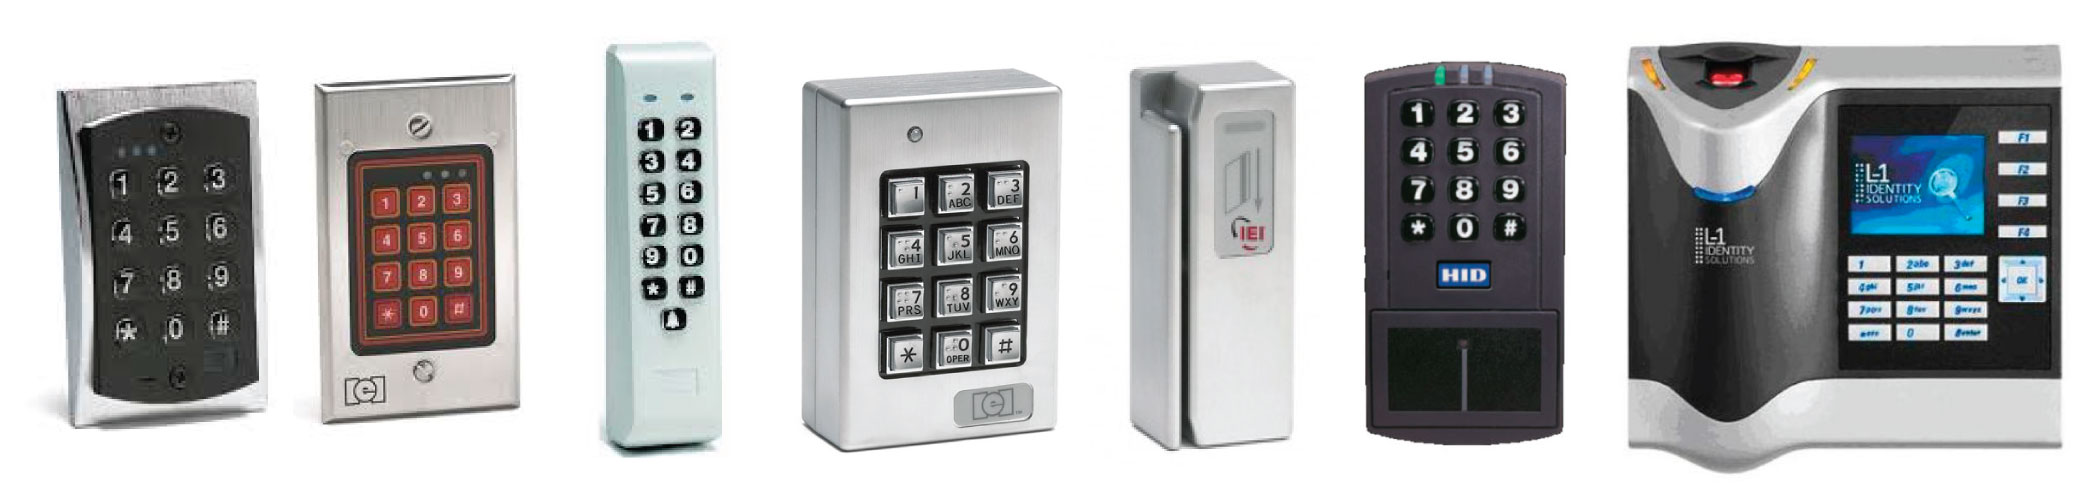 Security Access Keypad